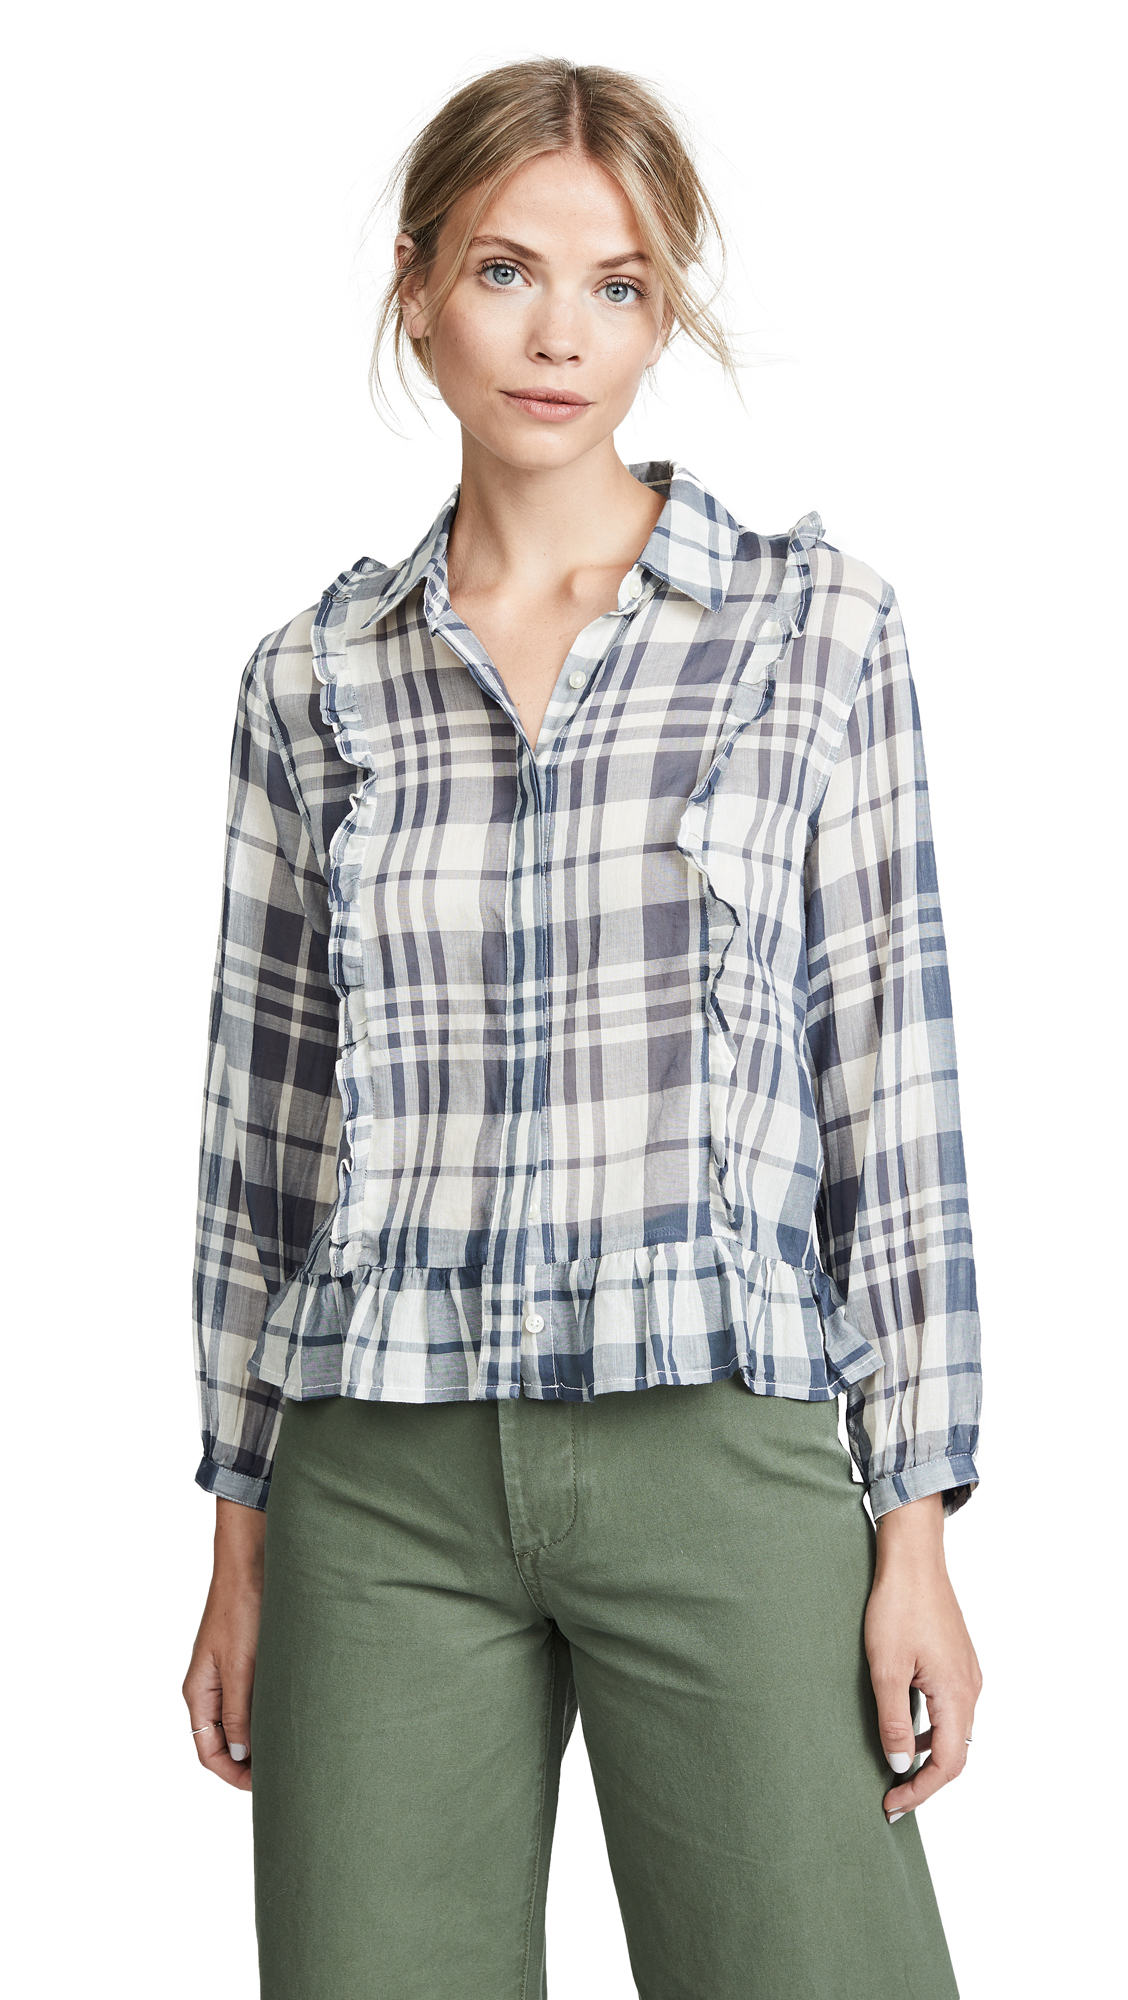 BIRDS OF PARADIS Alicia Victorian Blouse in Slate Plaid